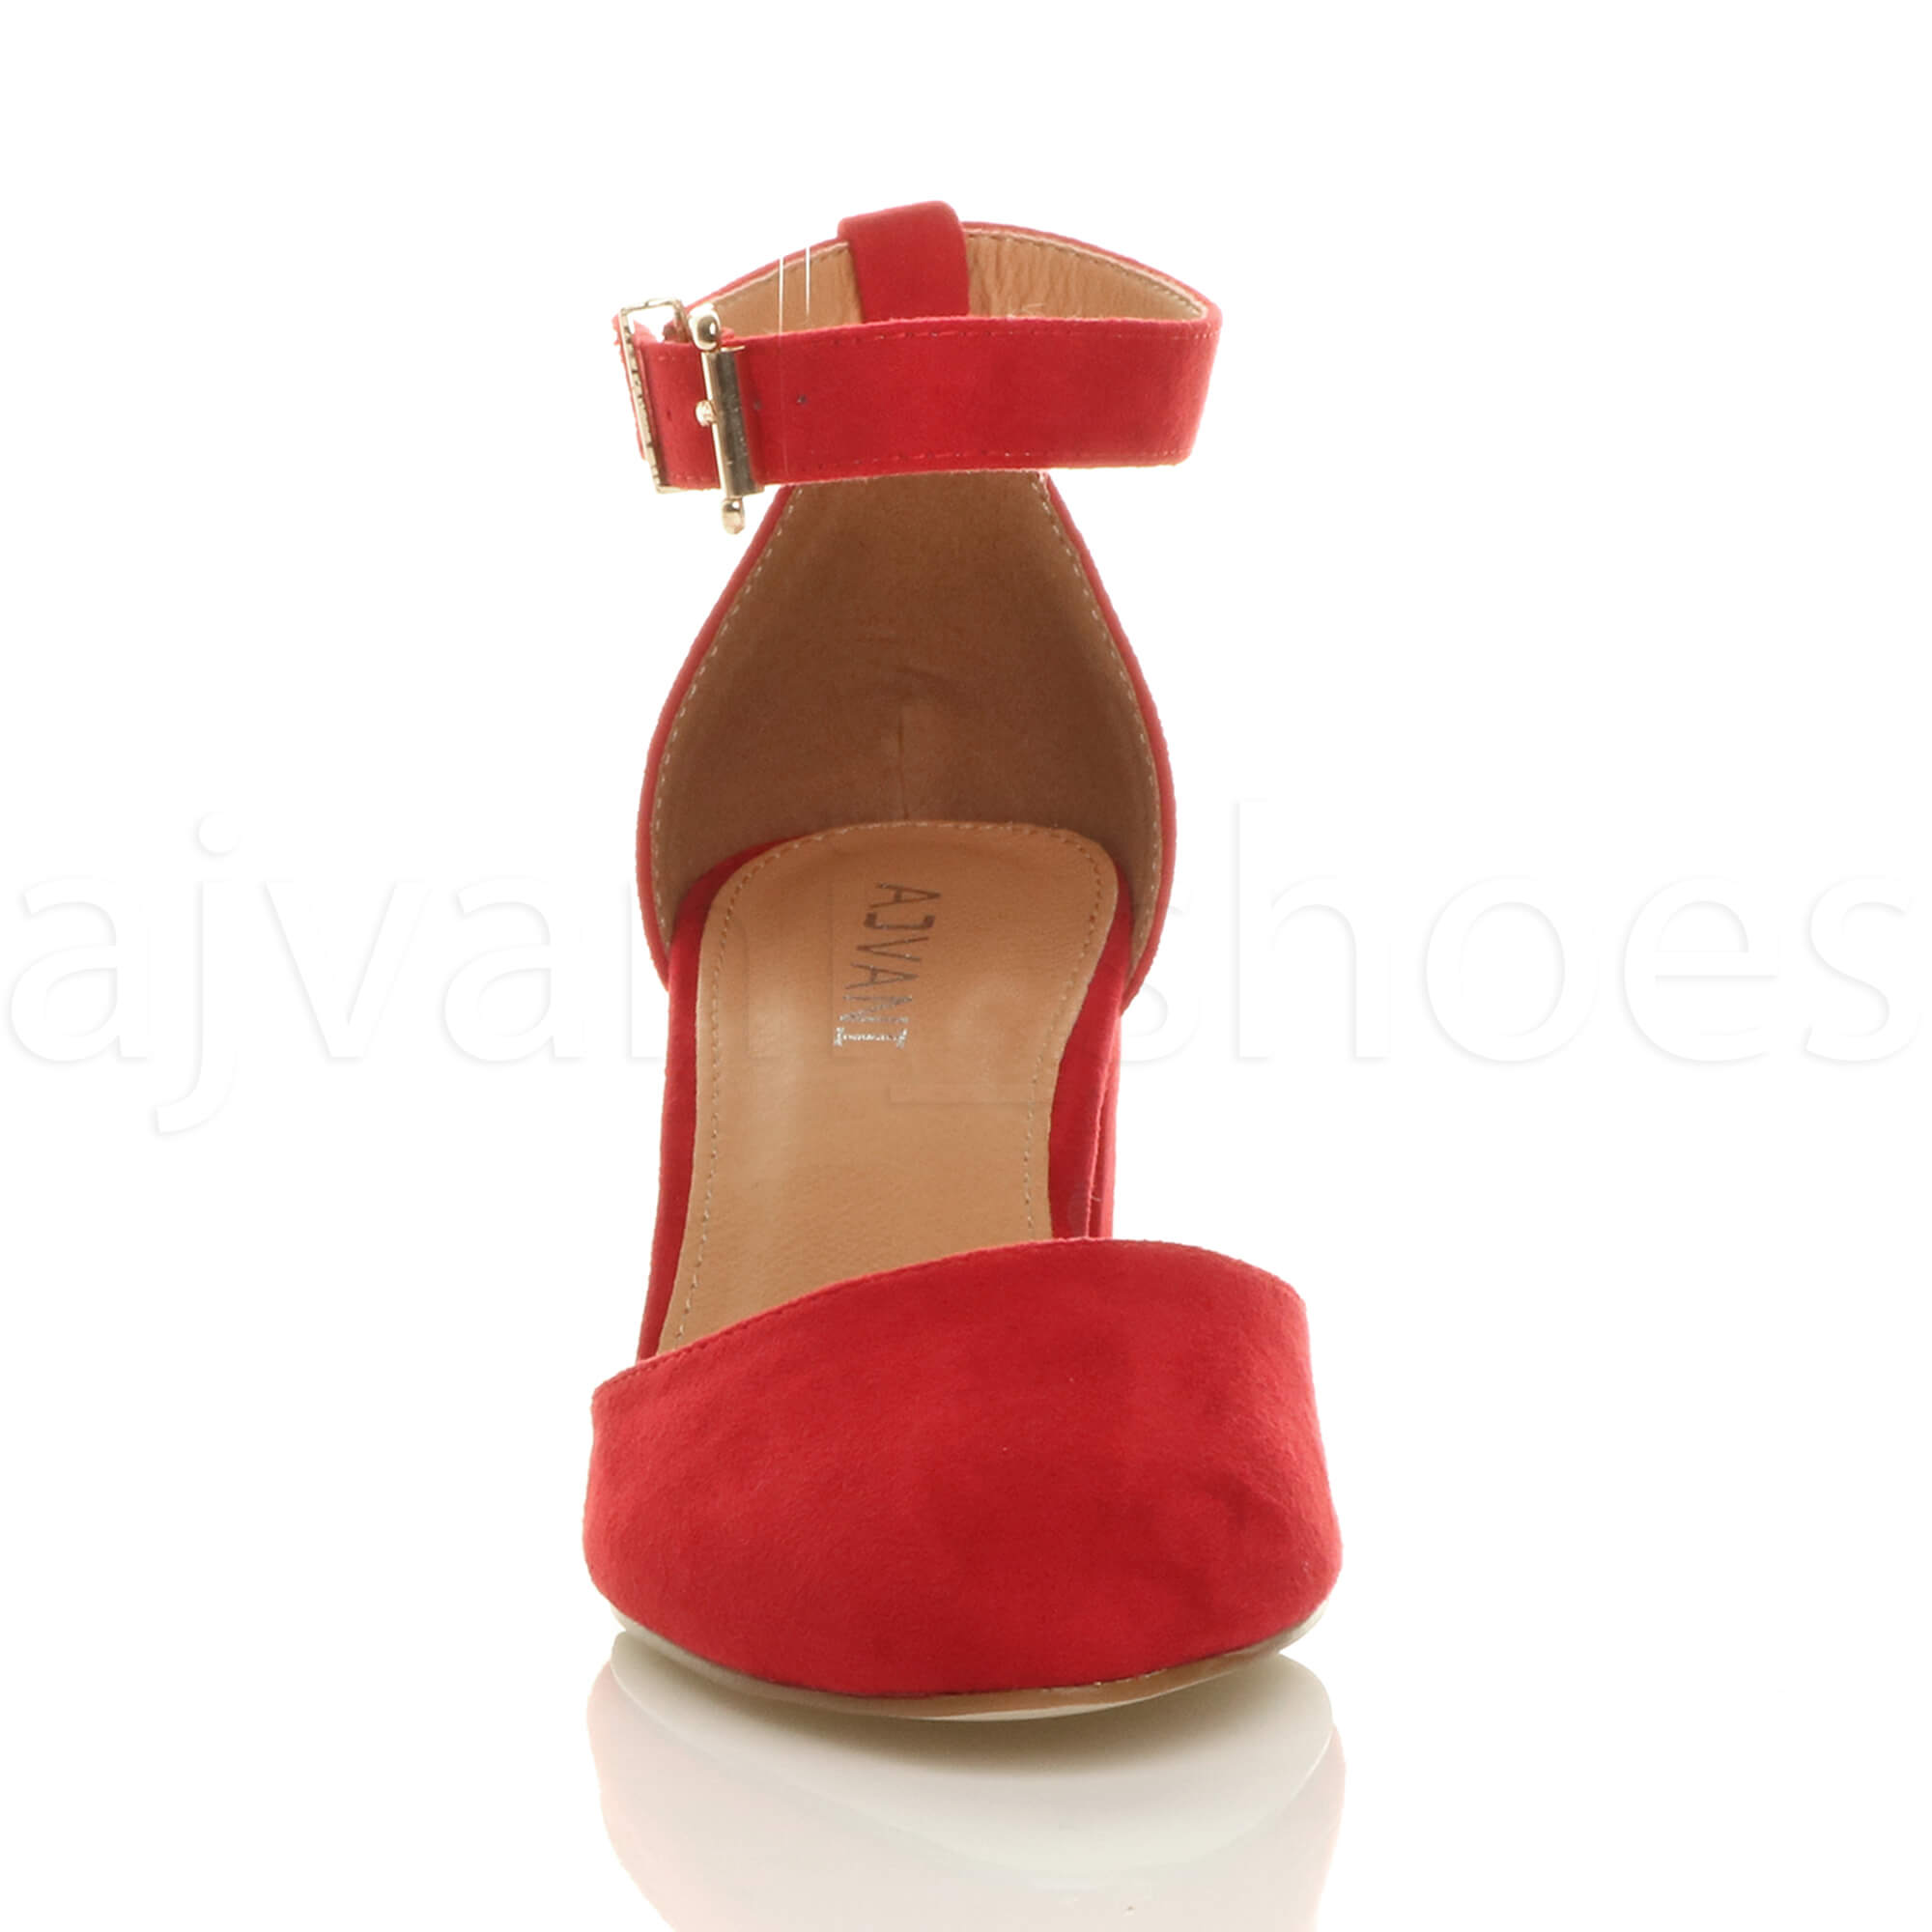 WOMENS-LADIES-LOW-MID-BLOCK-HEEL-ANKLE-STRAP-MARY-JANE-COURT-SHOES-SANDALS-SIZE thumbnail 143